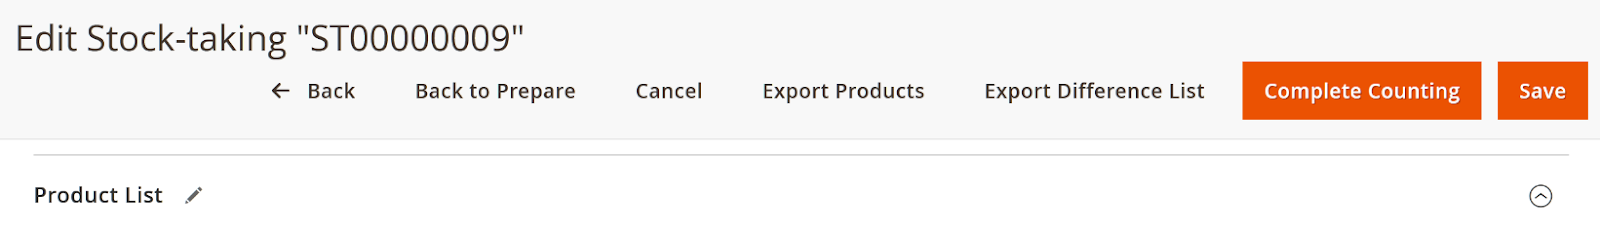 You can export difference list to double-check stock count.